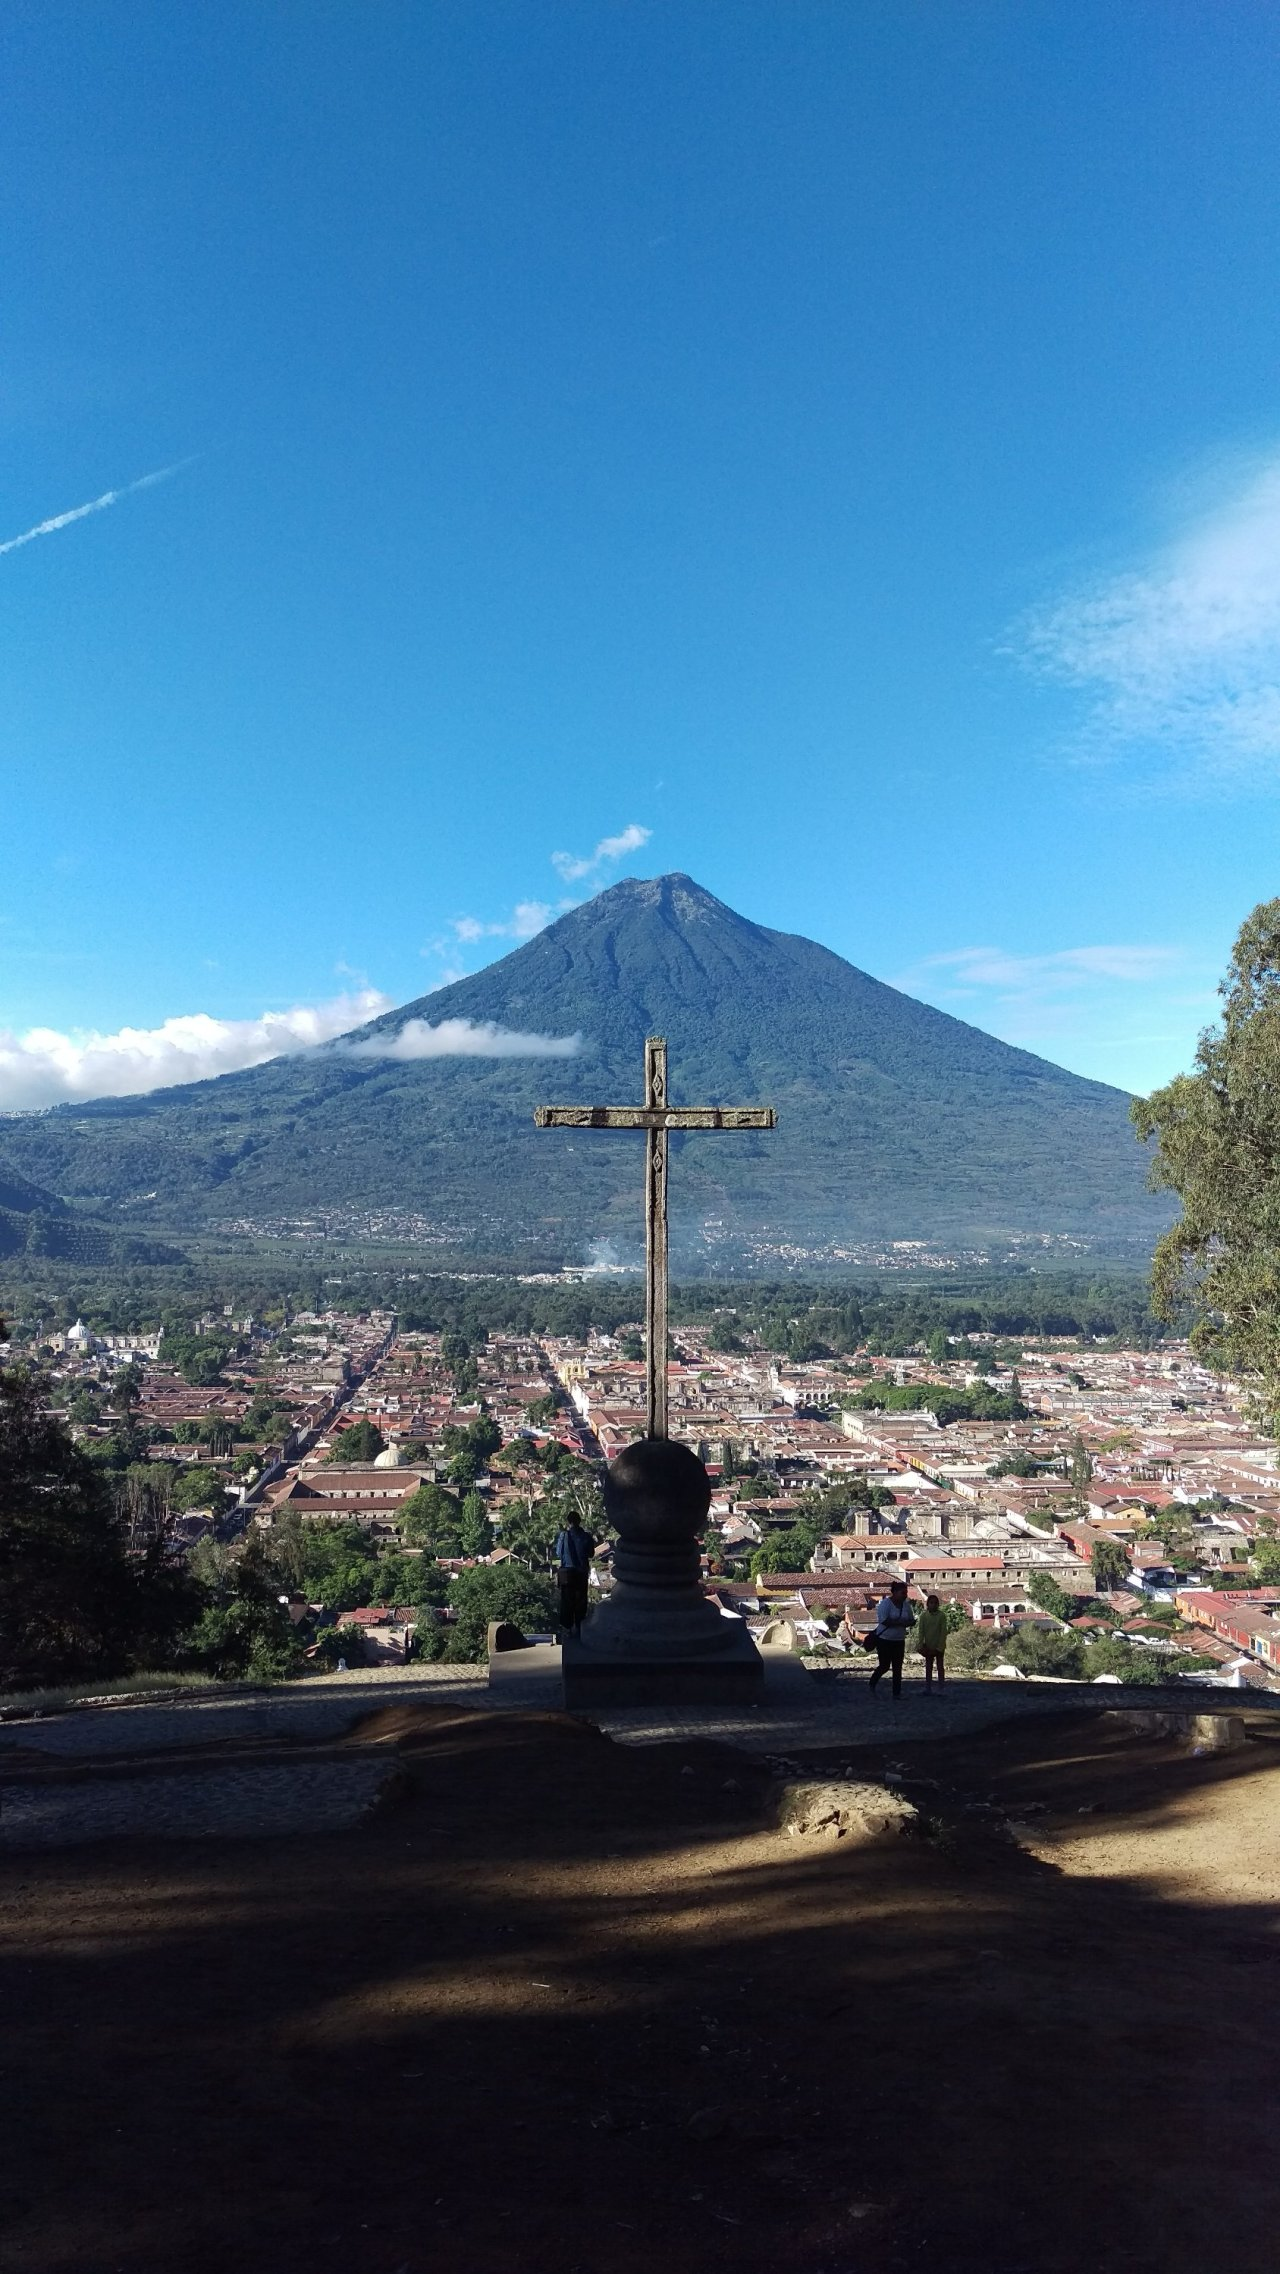 Final international stop – Guatemala